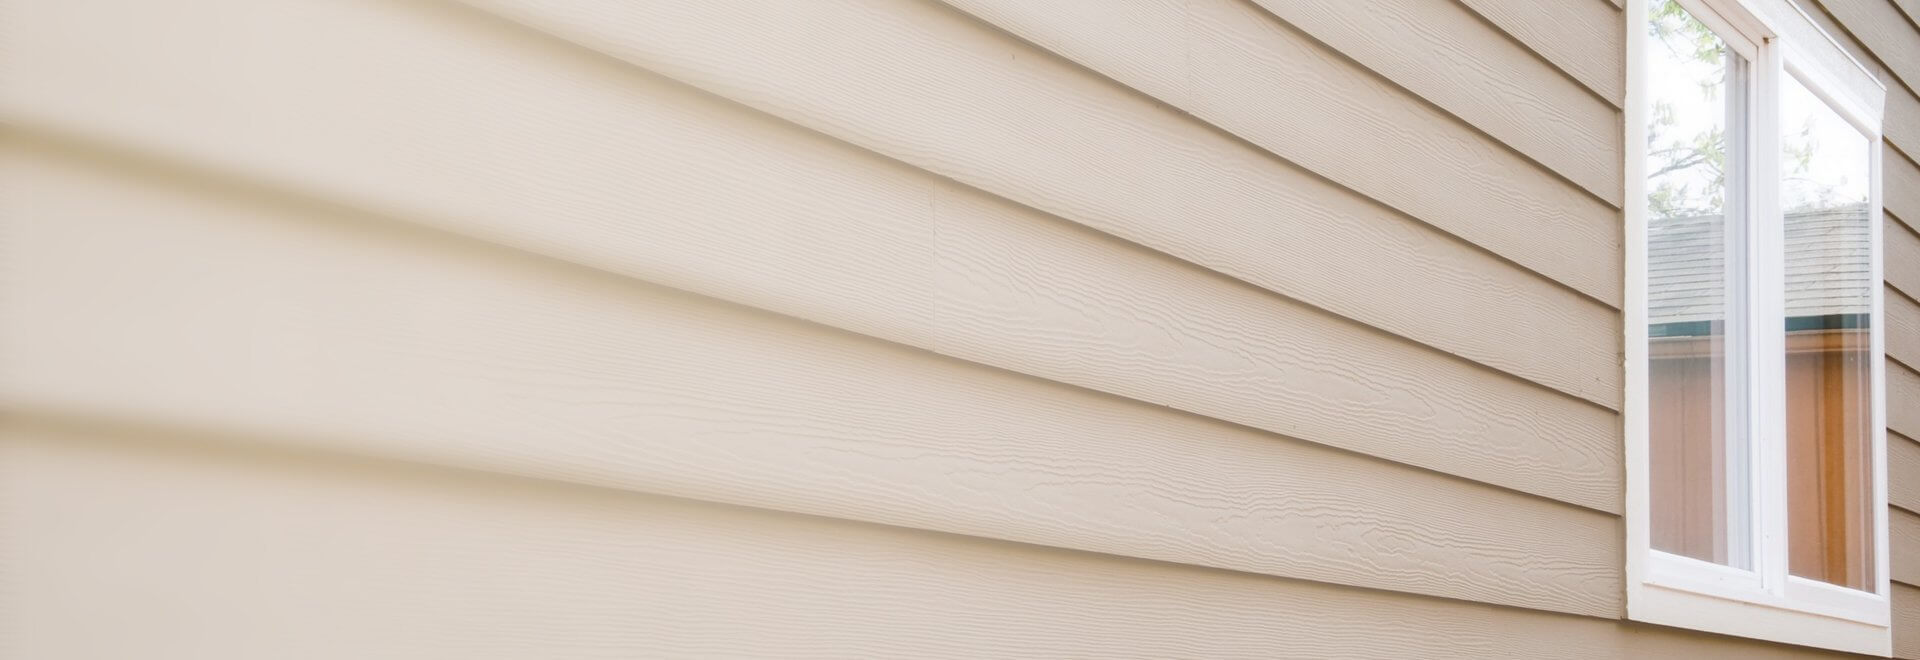 Siding Installs & Repairs in Austin, TX